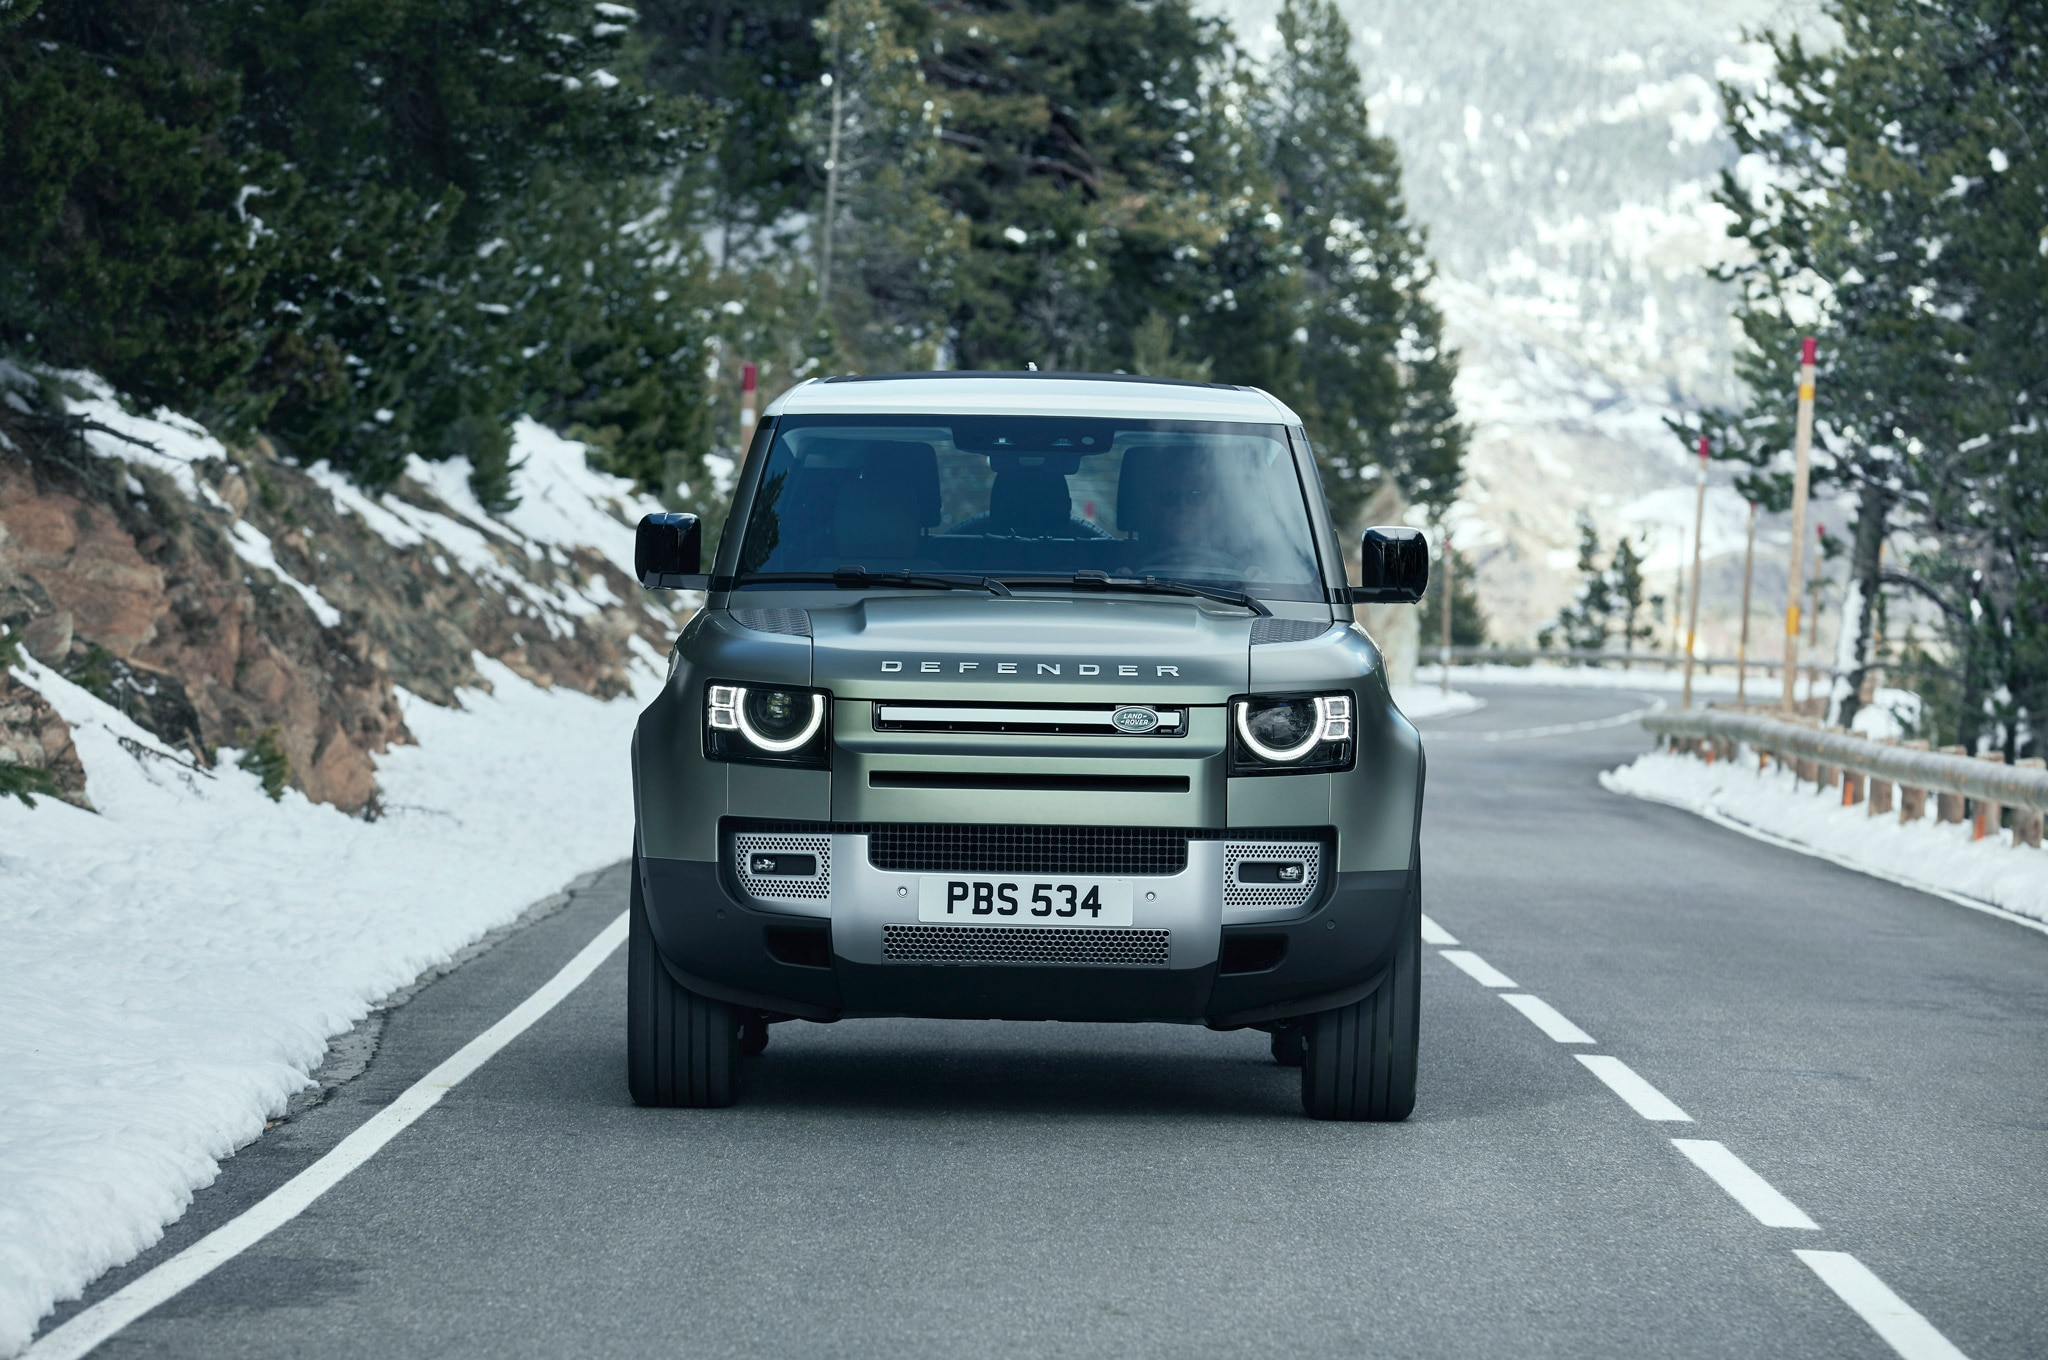 2020 land rover defender 90 exterior front view 02